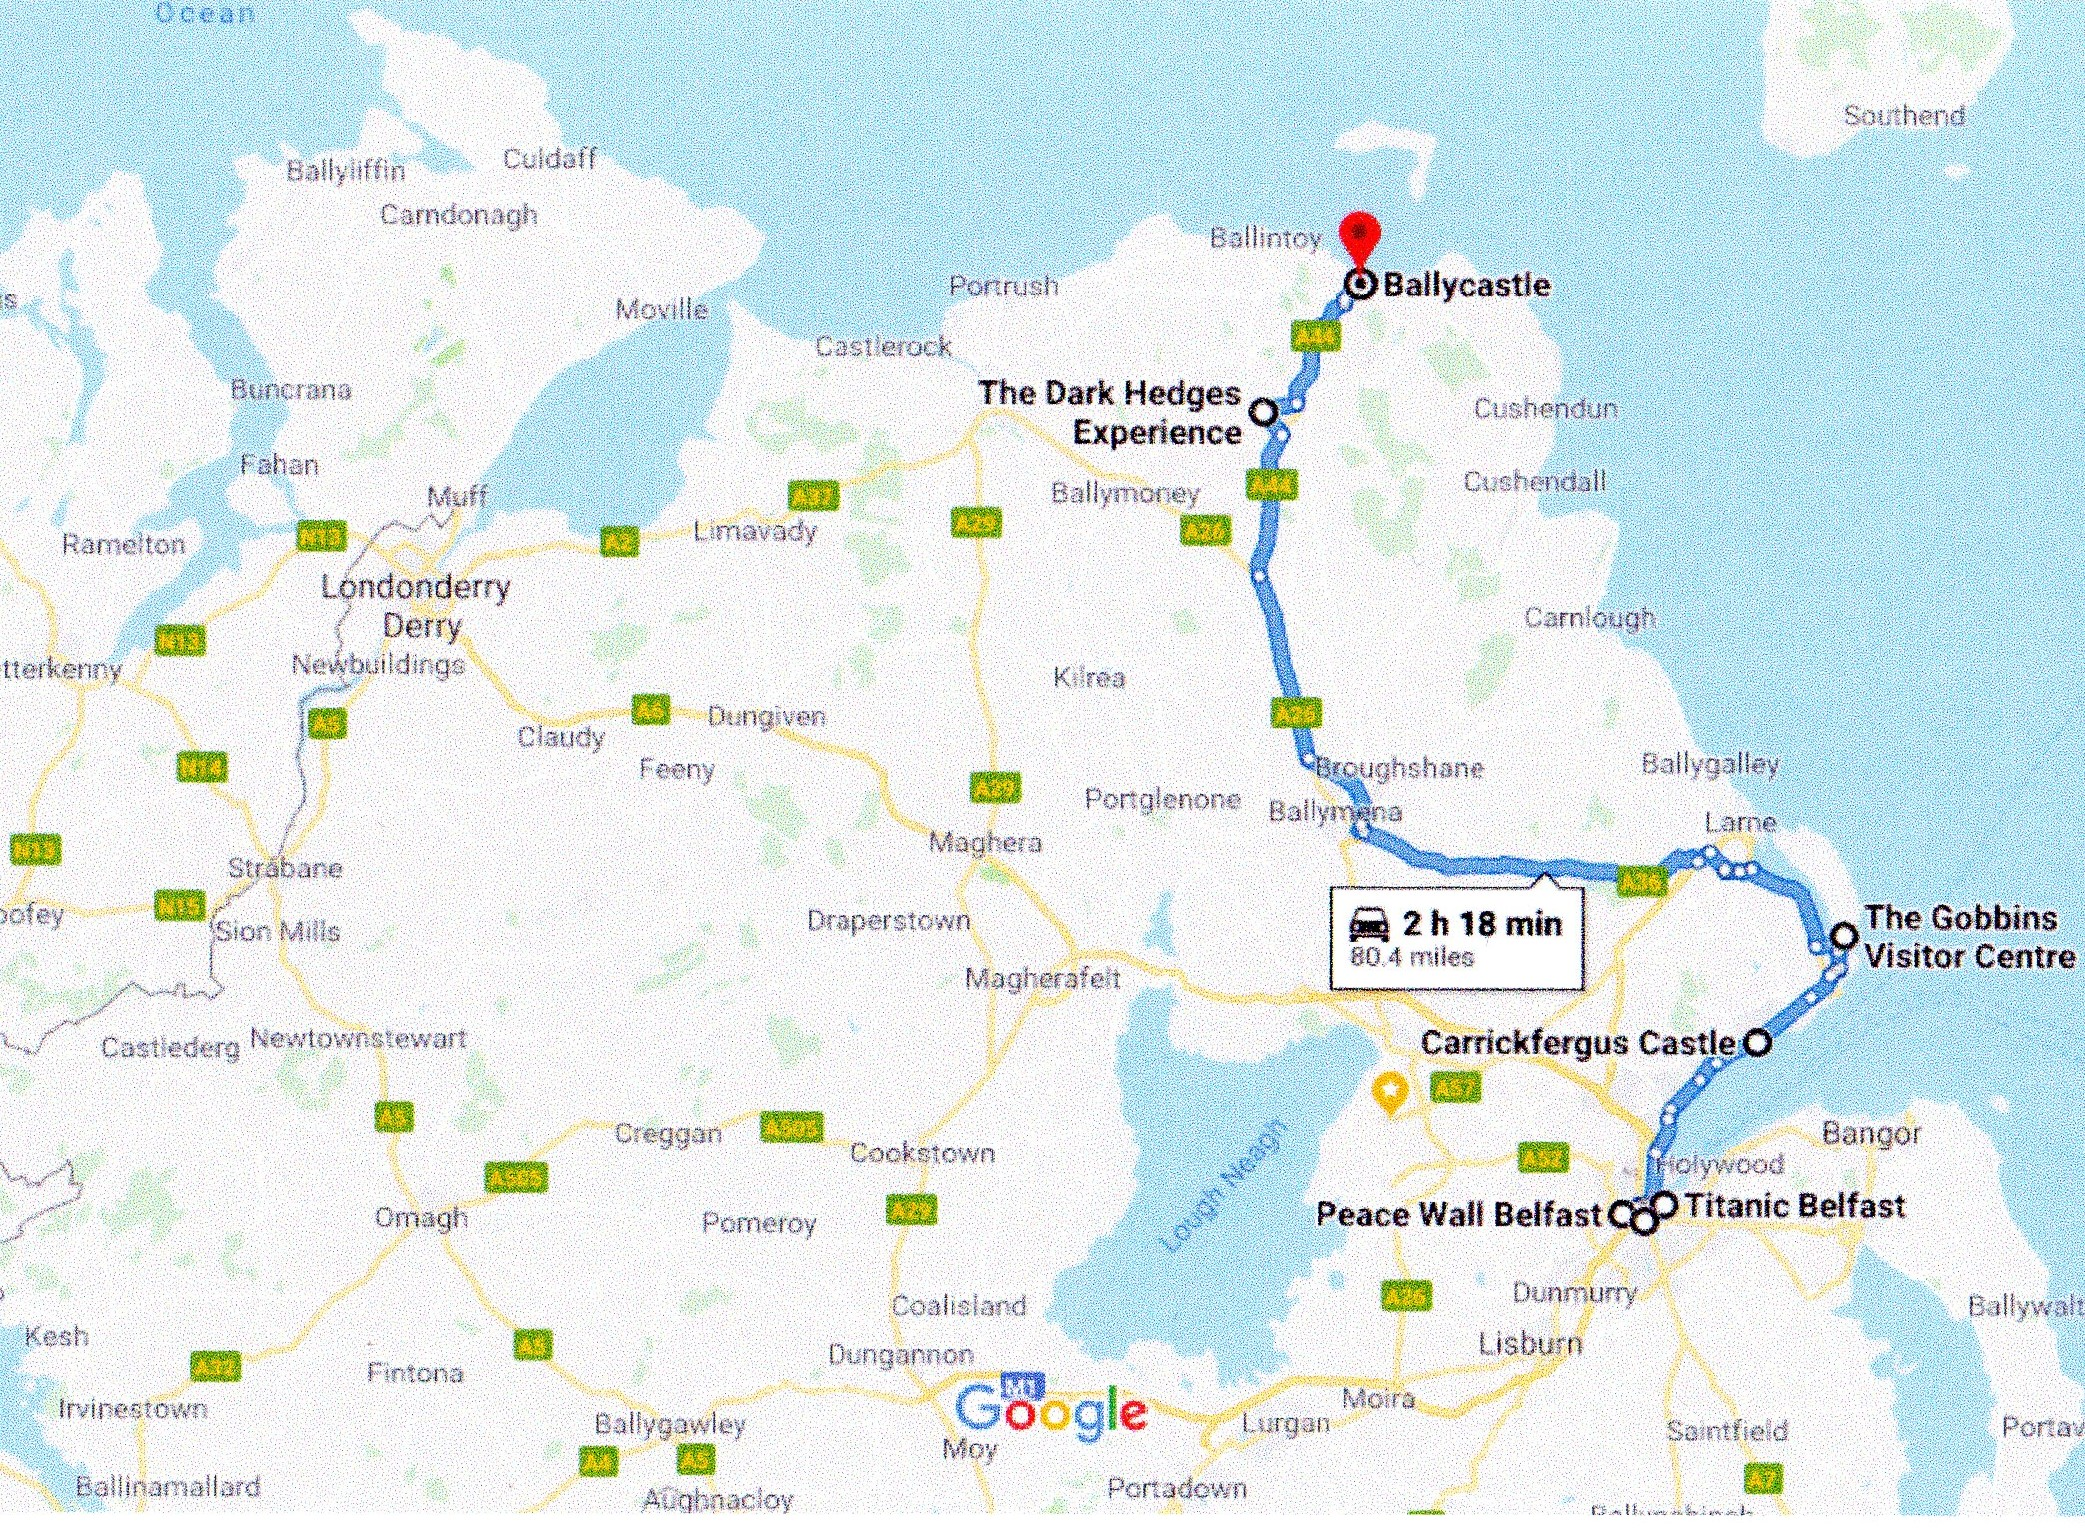 Google route map for Belfast to Ballycastle via Carrickfergus